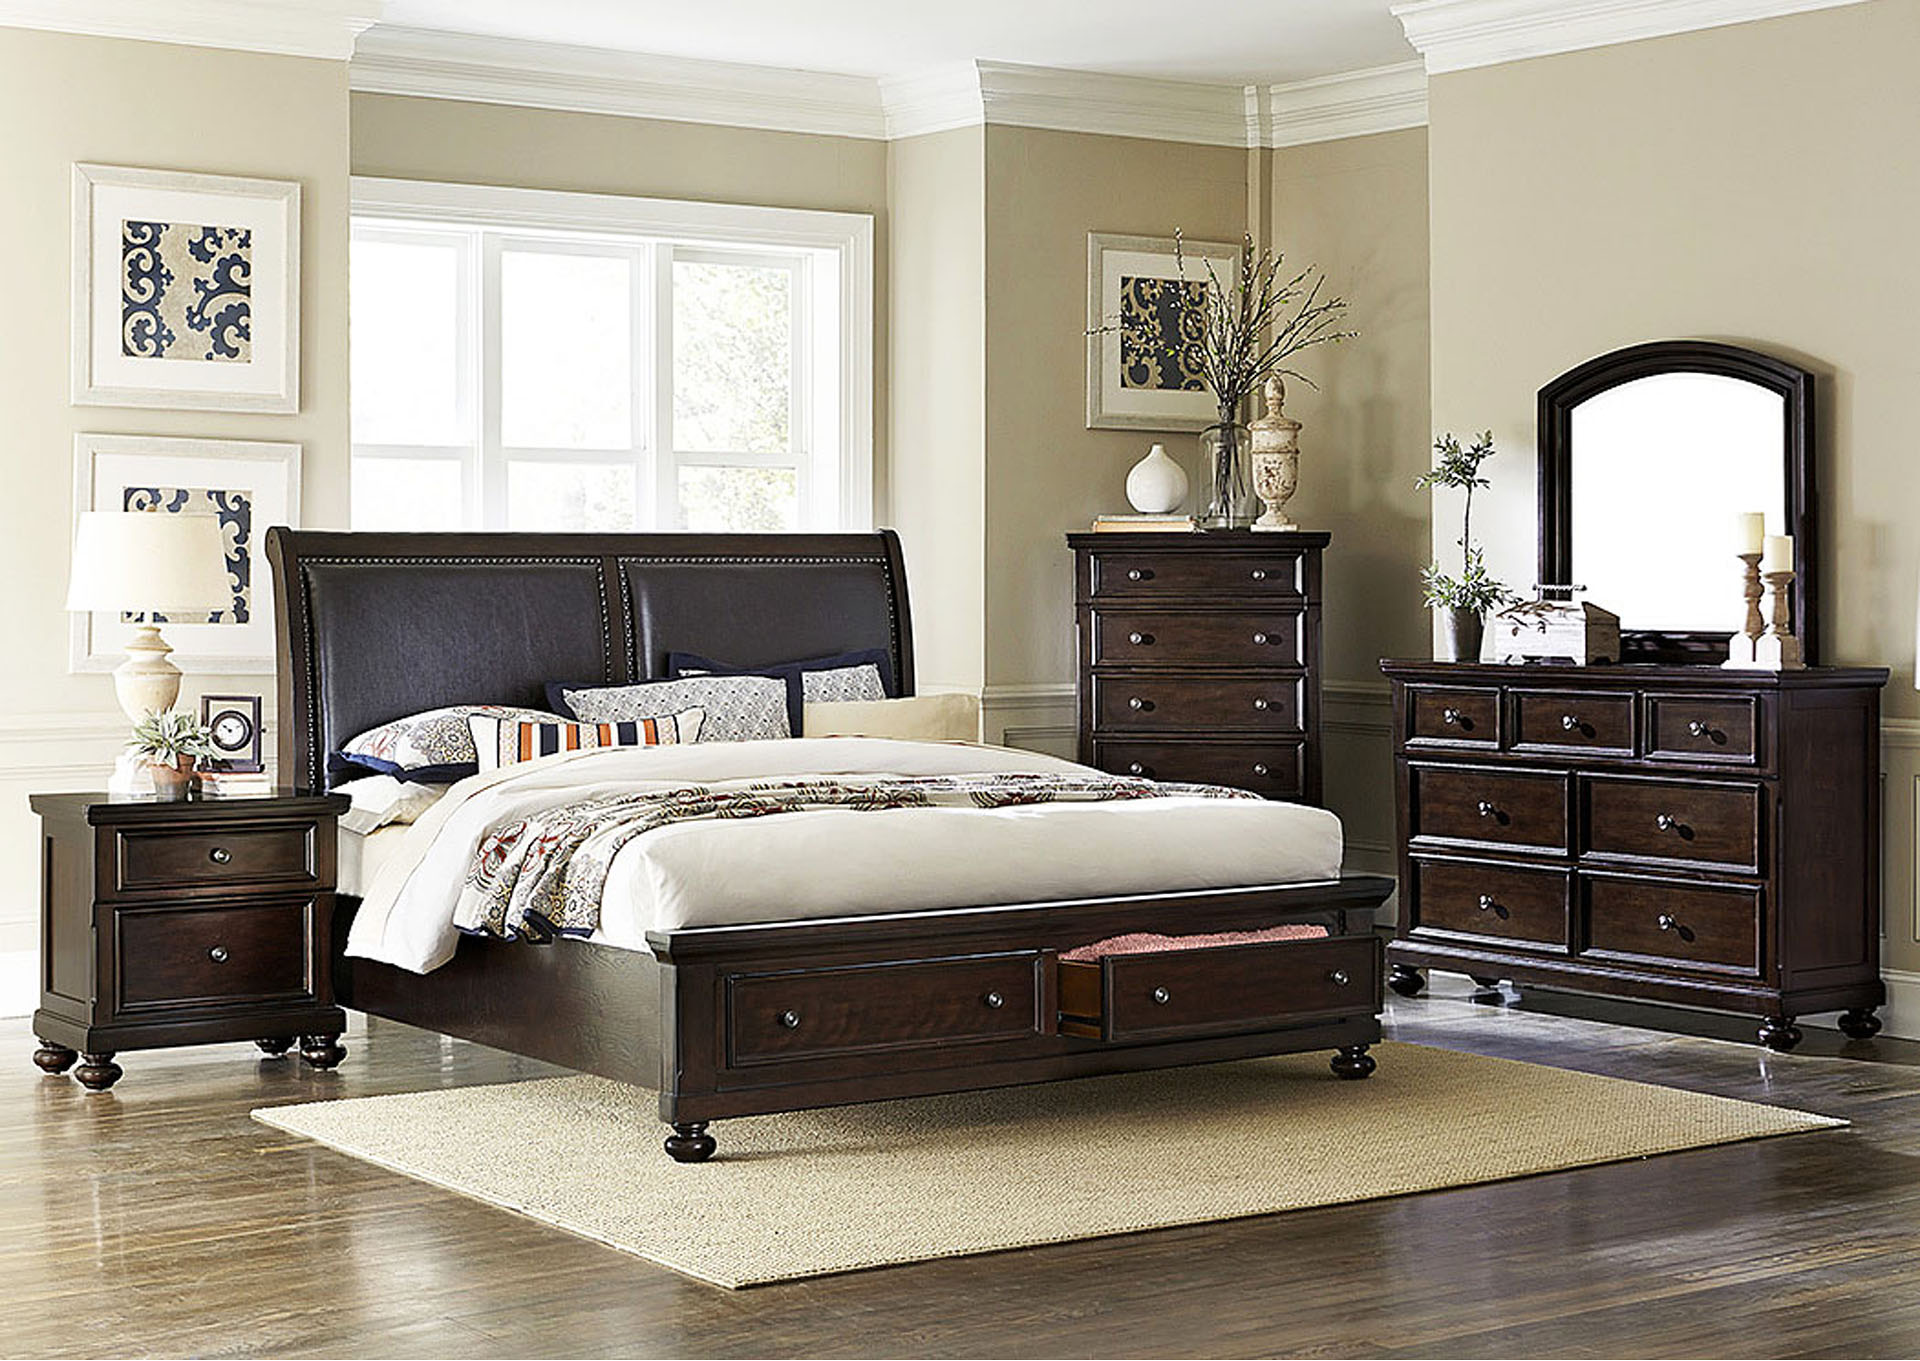 Faust Dark Cherry California King Platform Storage Bed,Homelegance